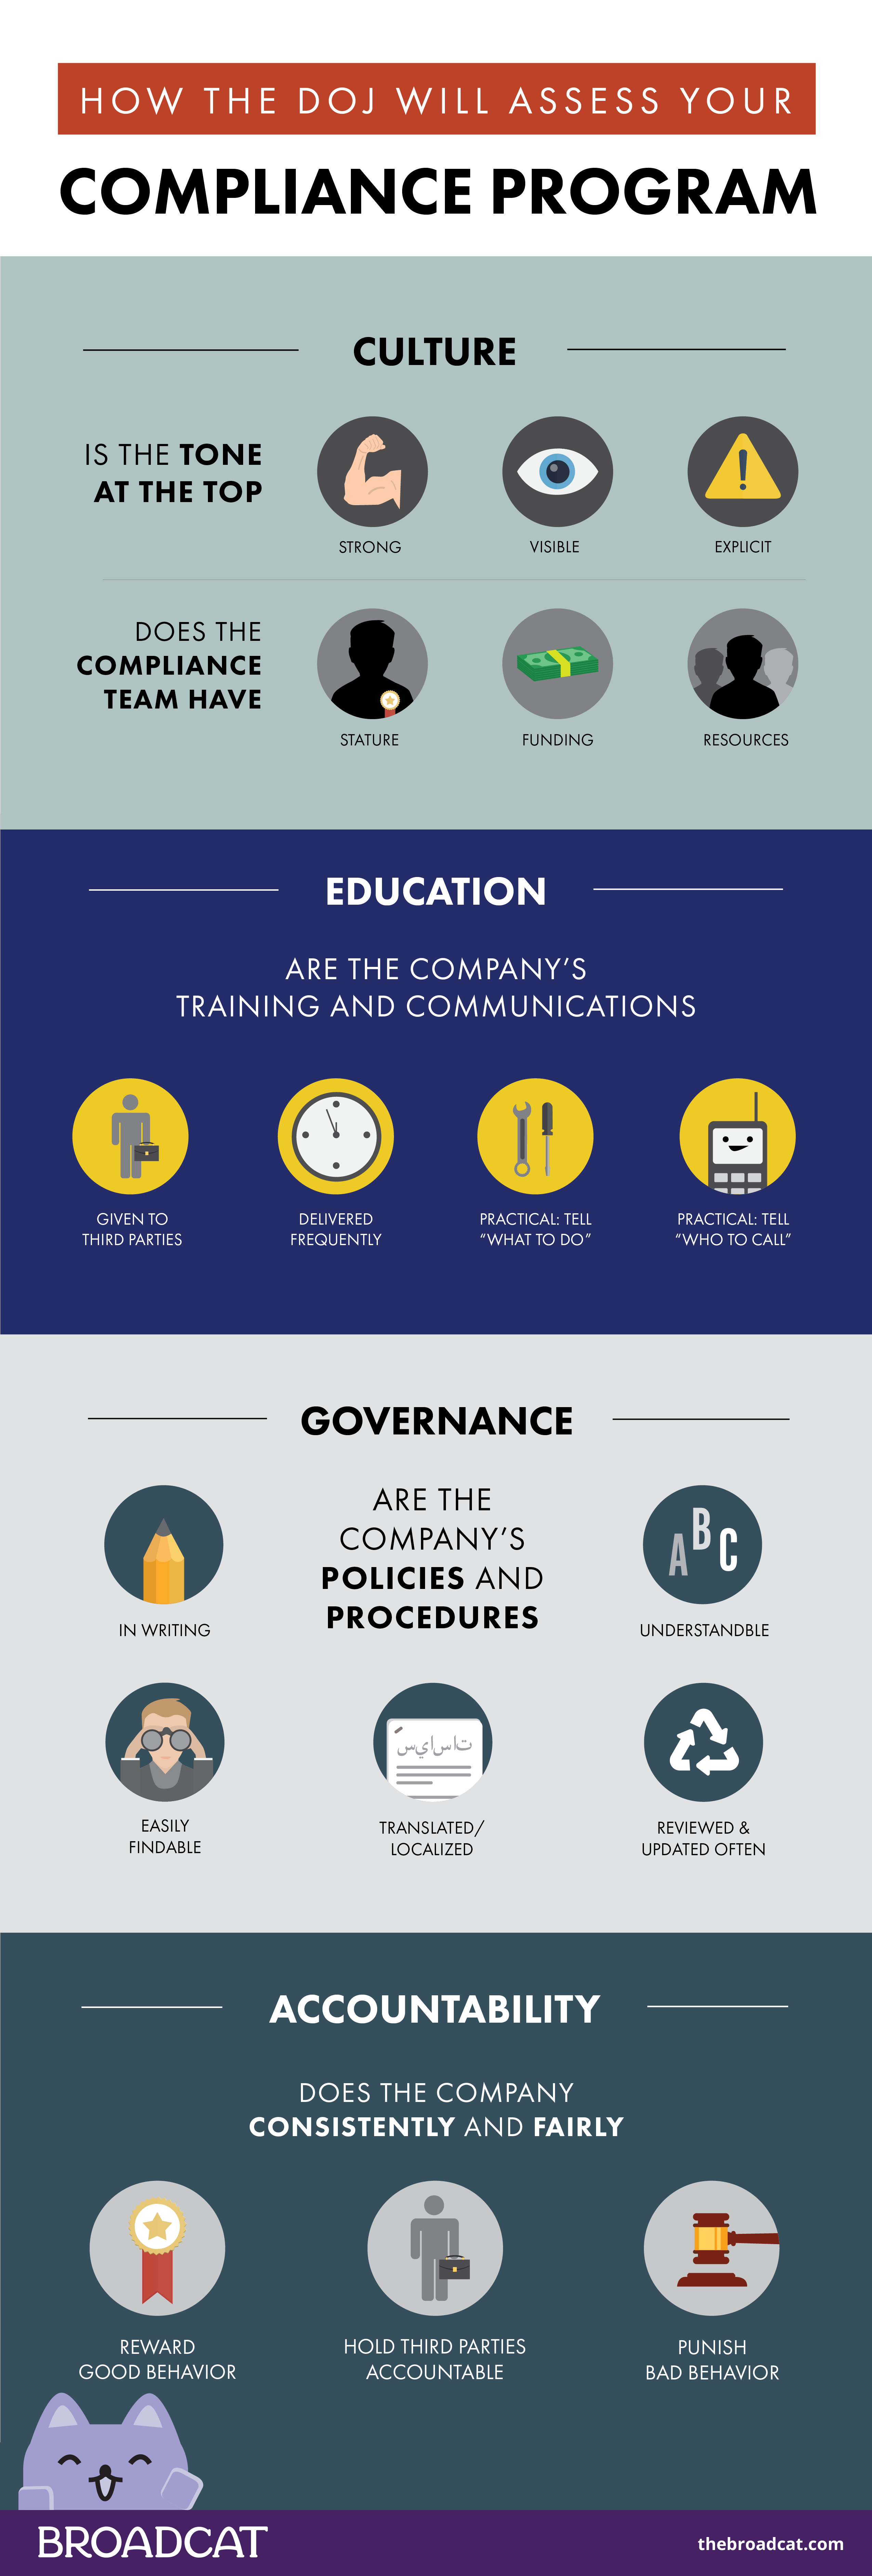 Infographic showing how the DOJ will access your compliance program